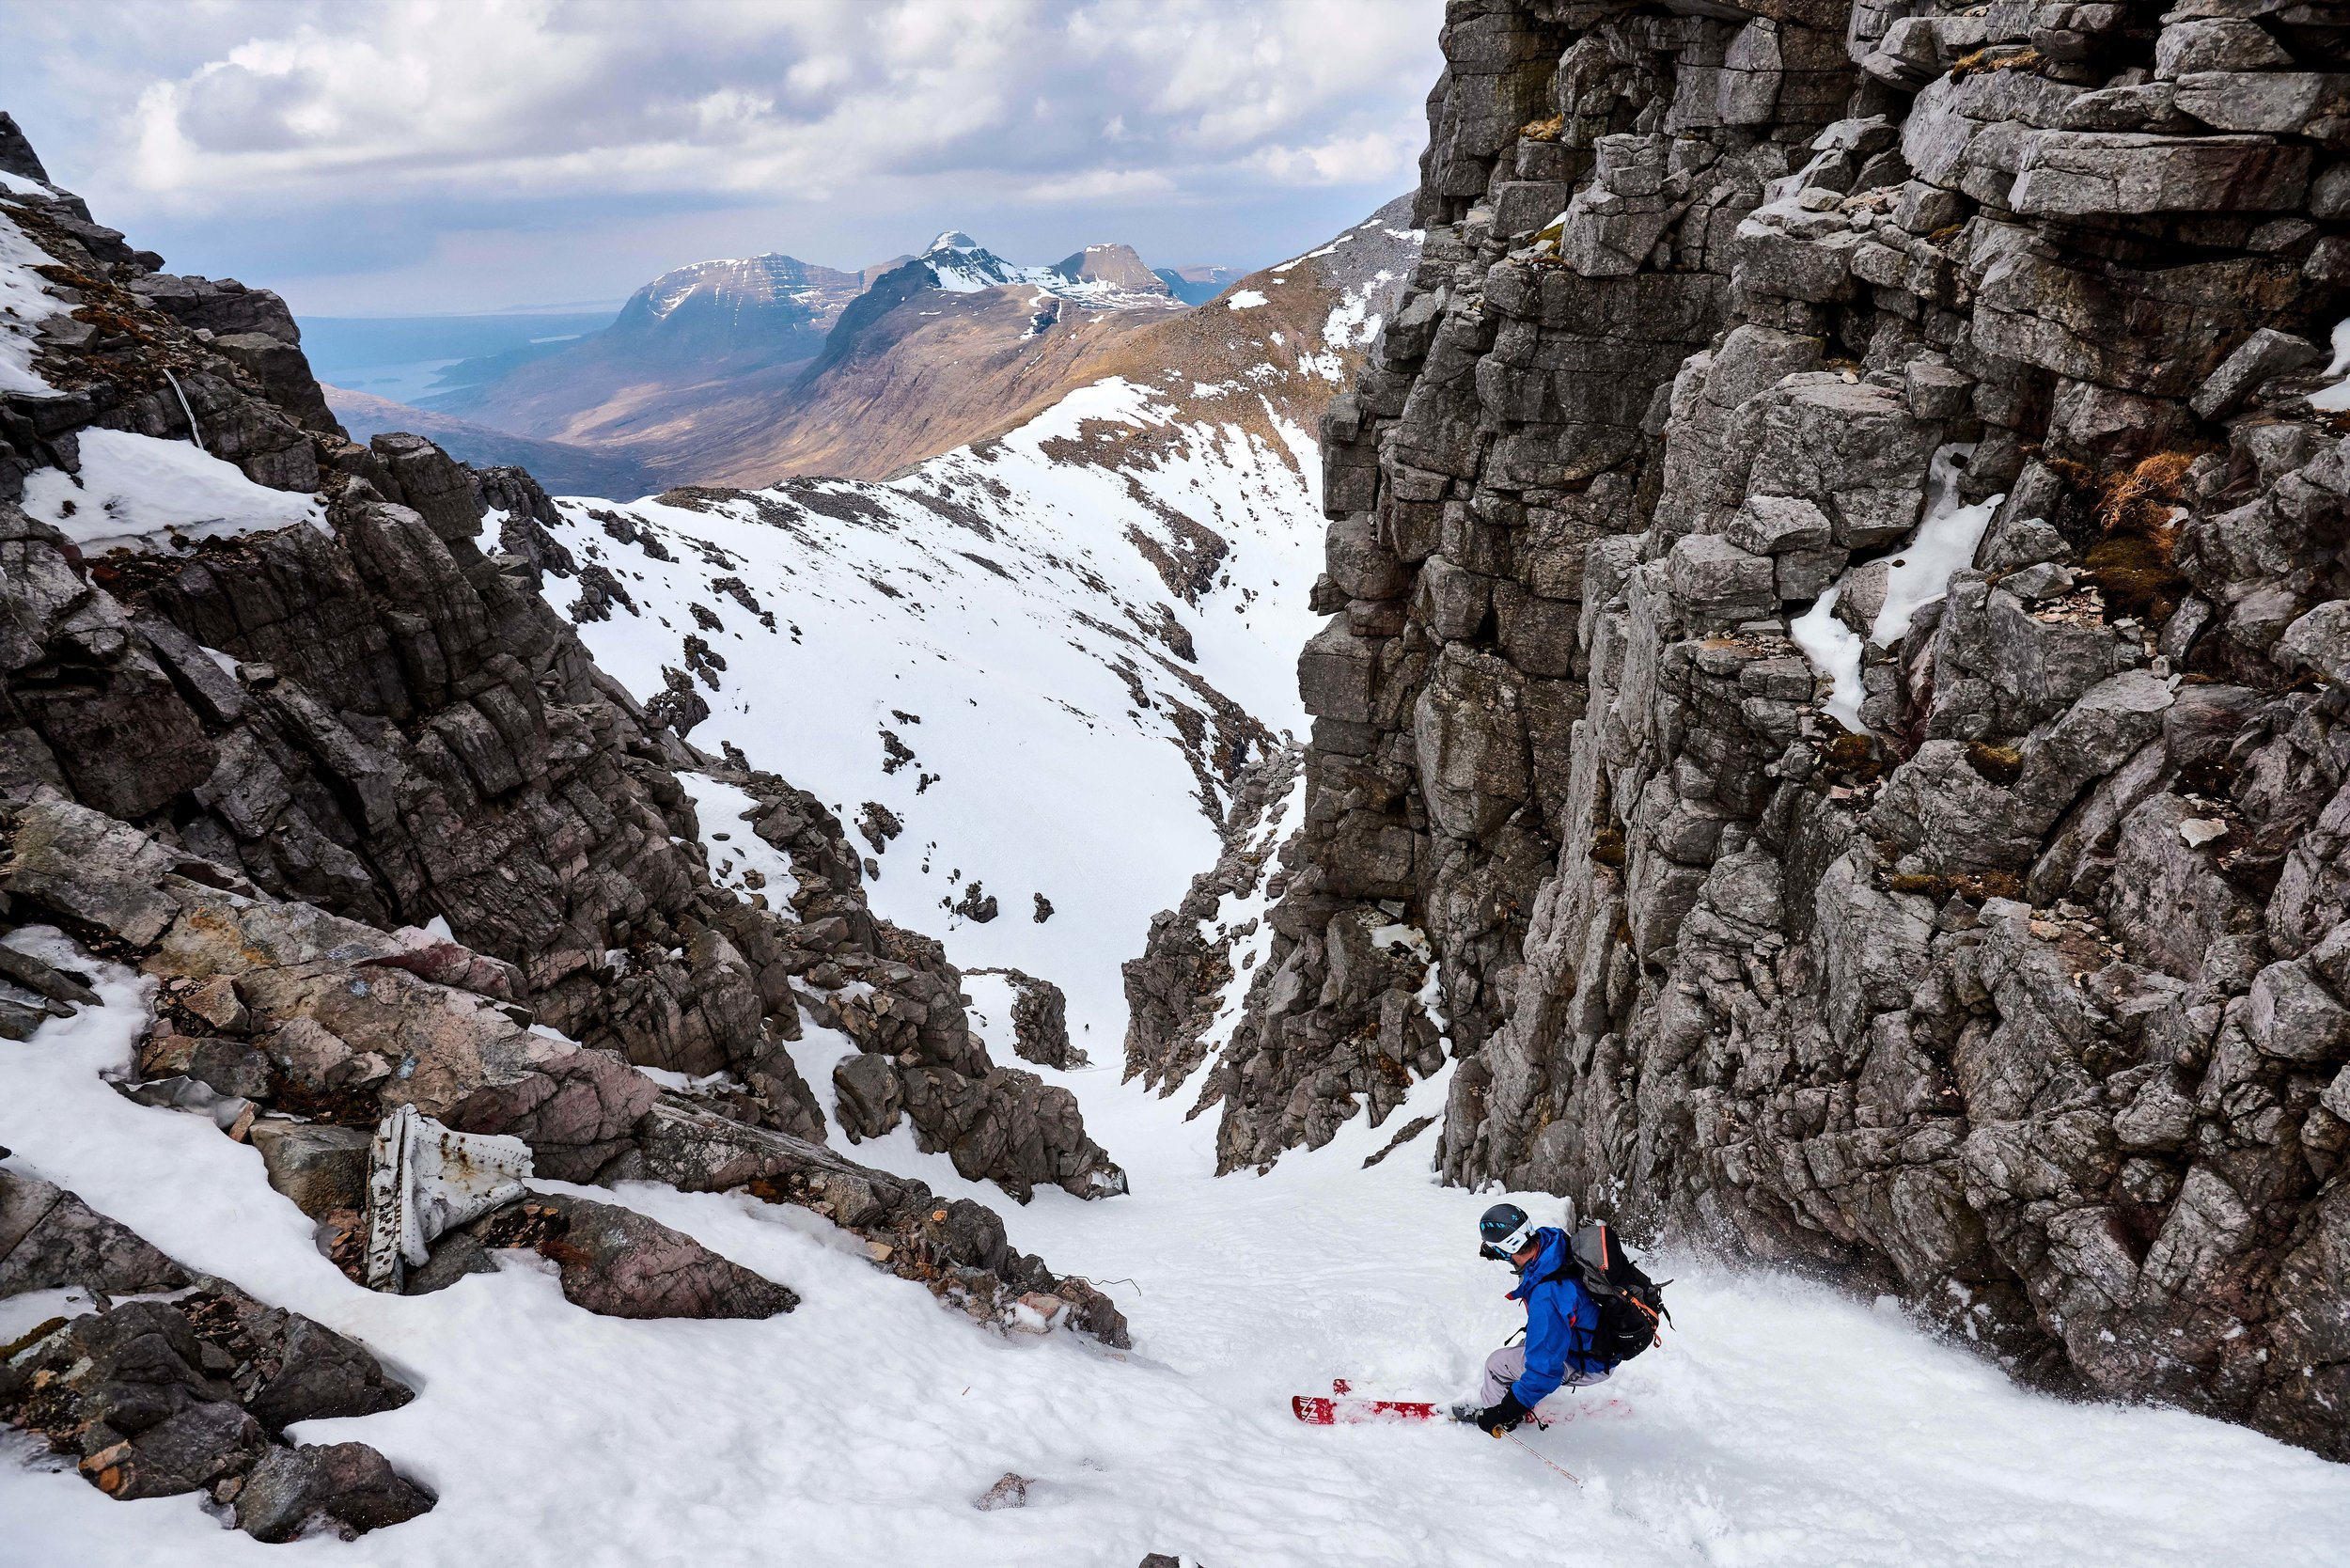 Scott skiing the narrow upper section of 'Fuselage Gully' on Beinn Eighe. In 1951, a Lancaster bomber crashed directly below the summit of Còinneach Mòr, one of the tops of Beinn Eighe and the gully is named after the wreckage which now sits within it (some of which can be seen in the photo). In lean snow conditions, a large propellor which is part of the wreckage can require an abseil to bypass, however on this occasion it was completely banked out, with only the top 30cm or so visible.